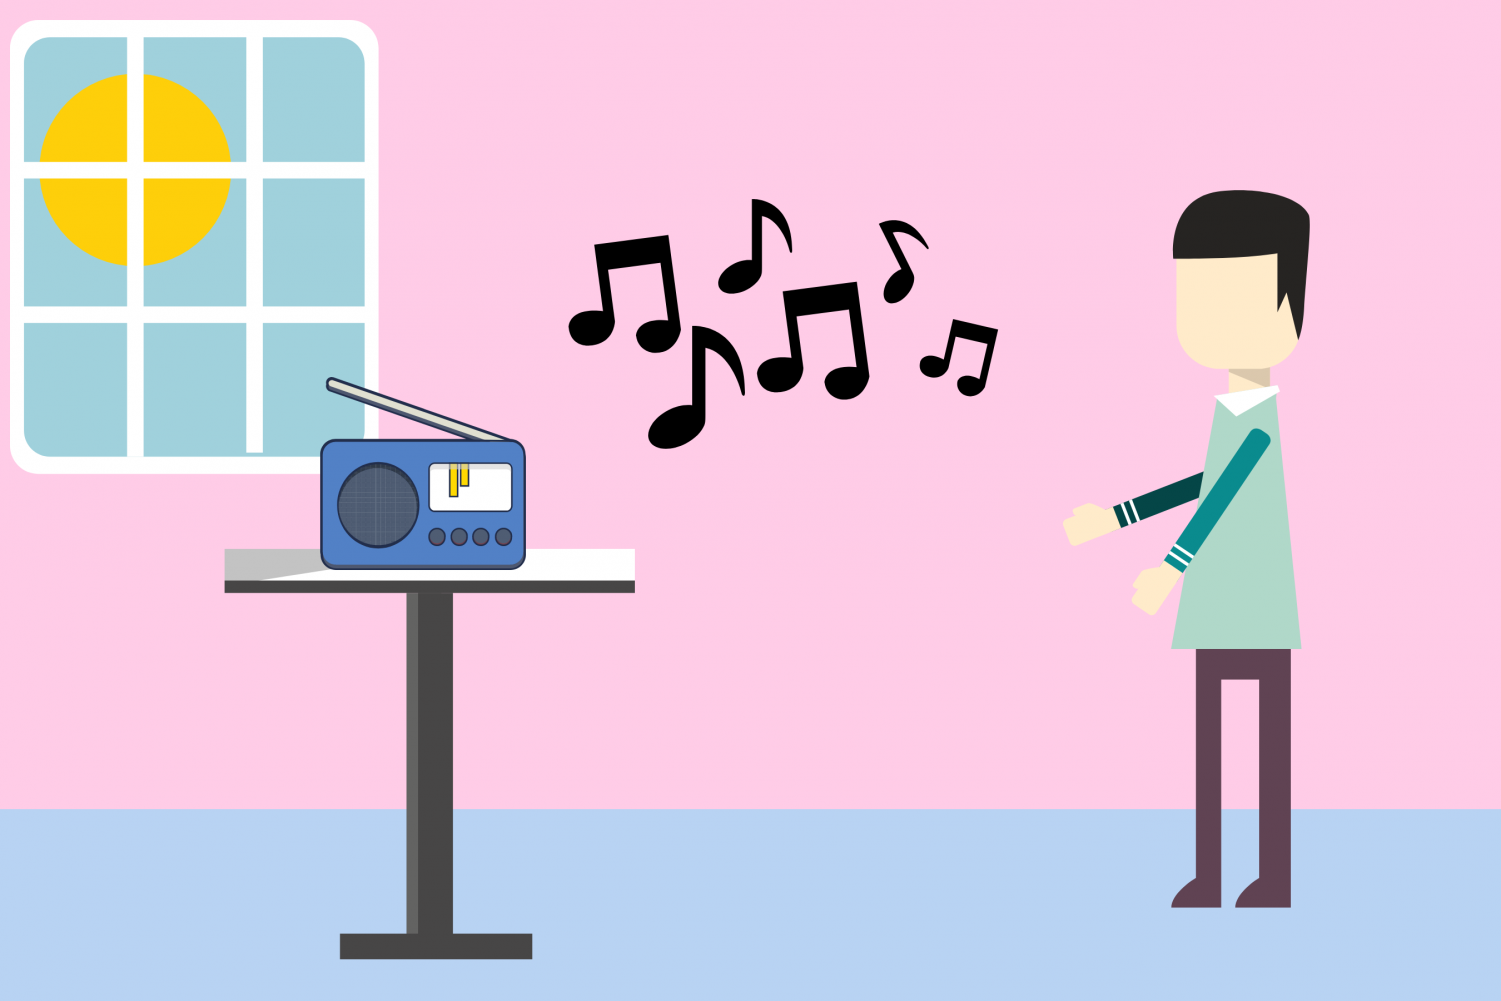 Give radio a chance; it's not old fashioned and provides many benefits, like allowing for multitasking.